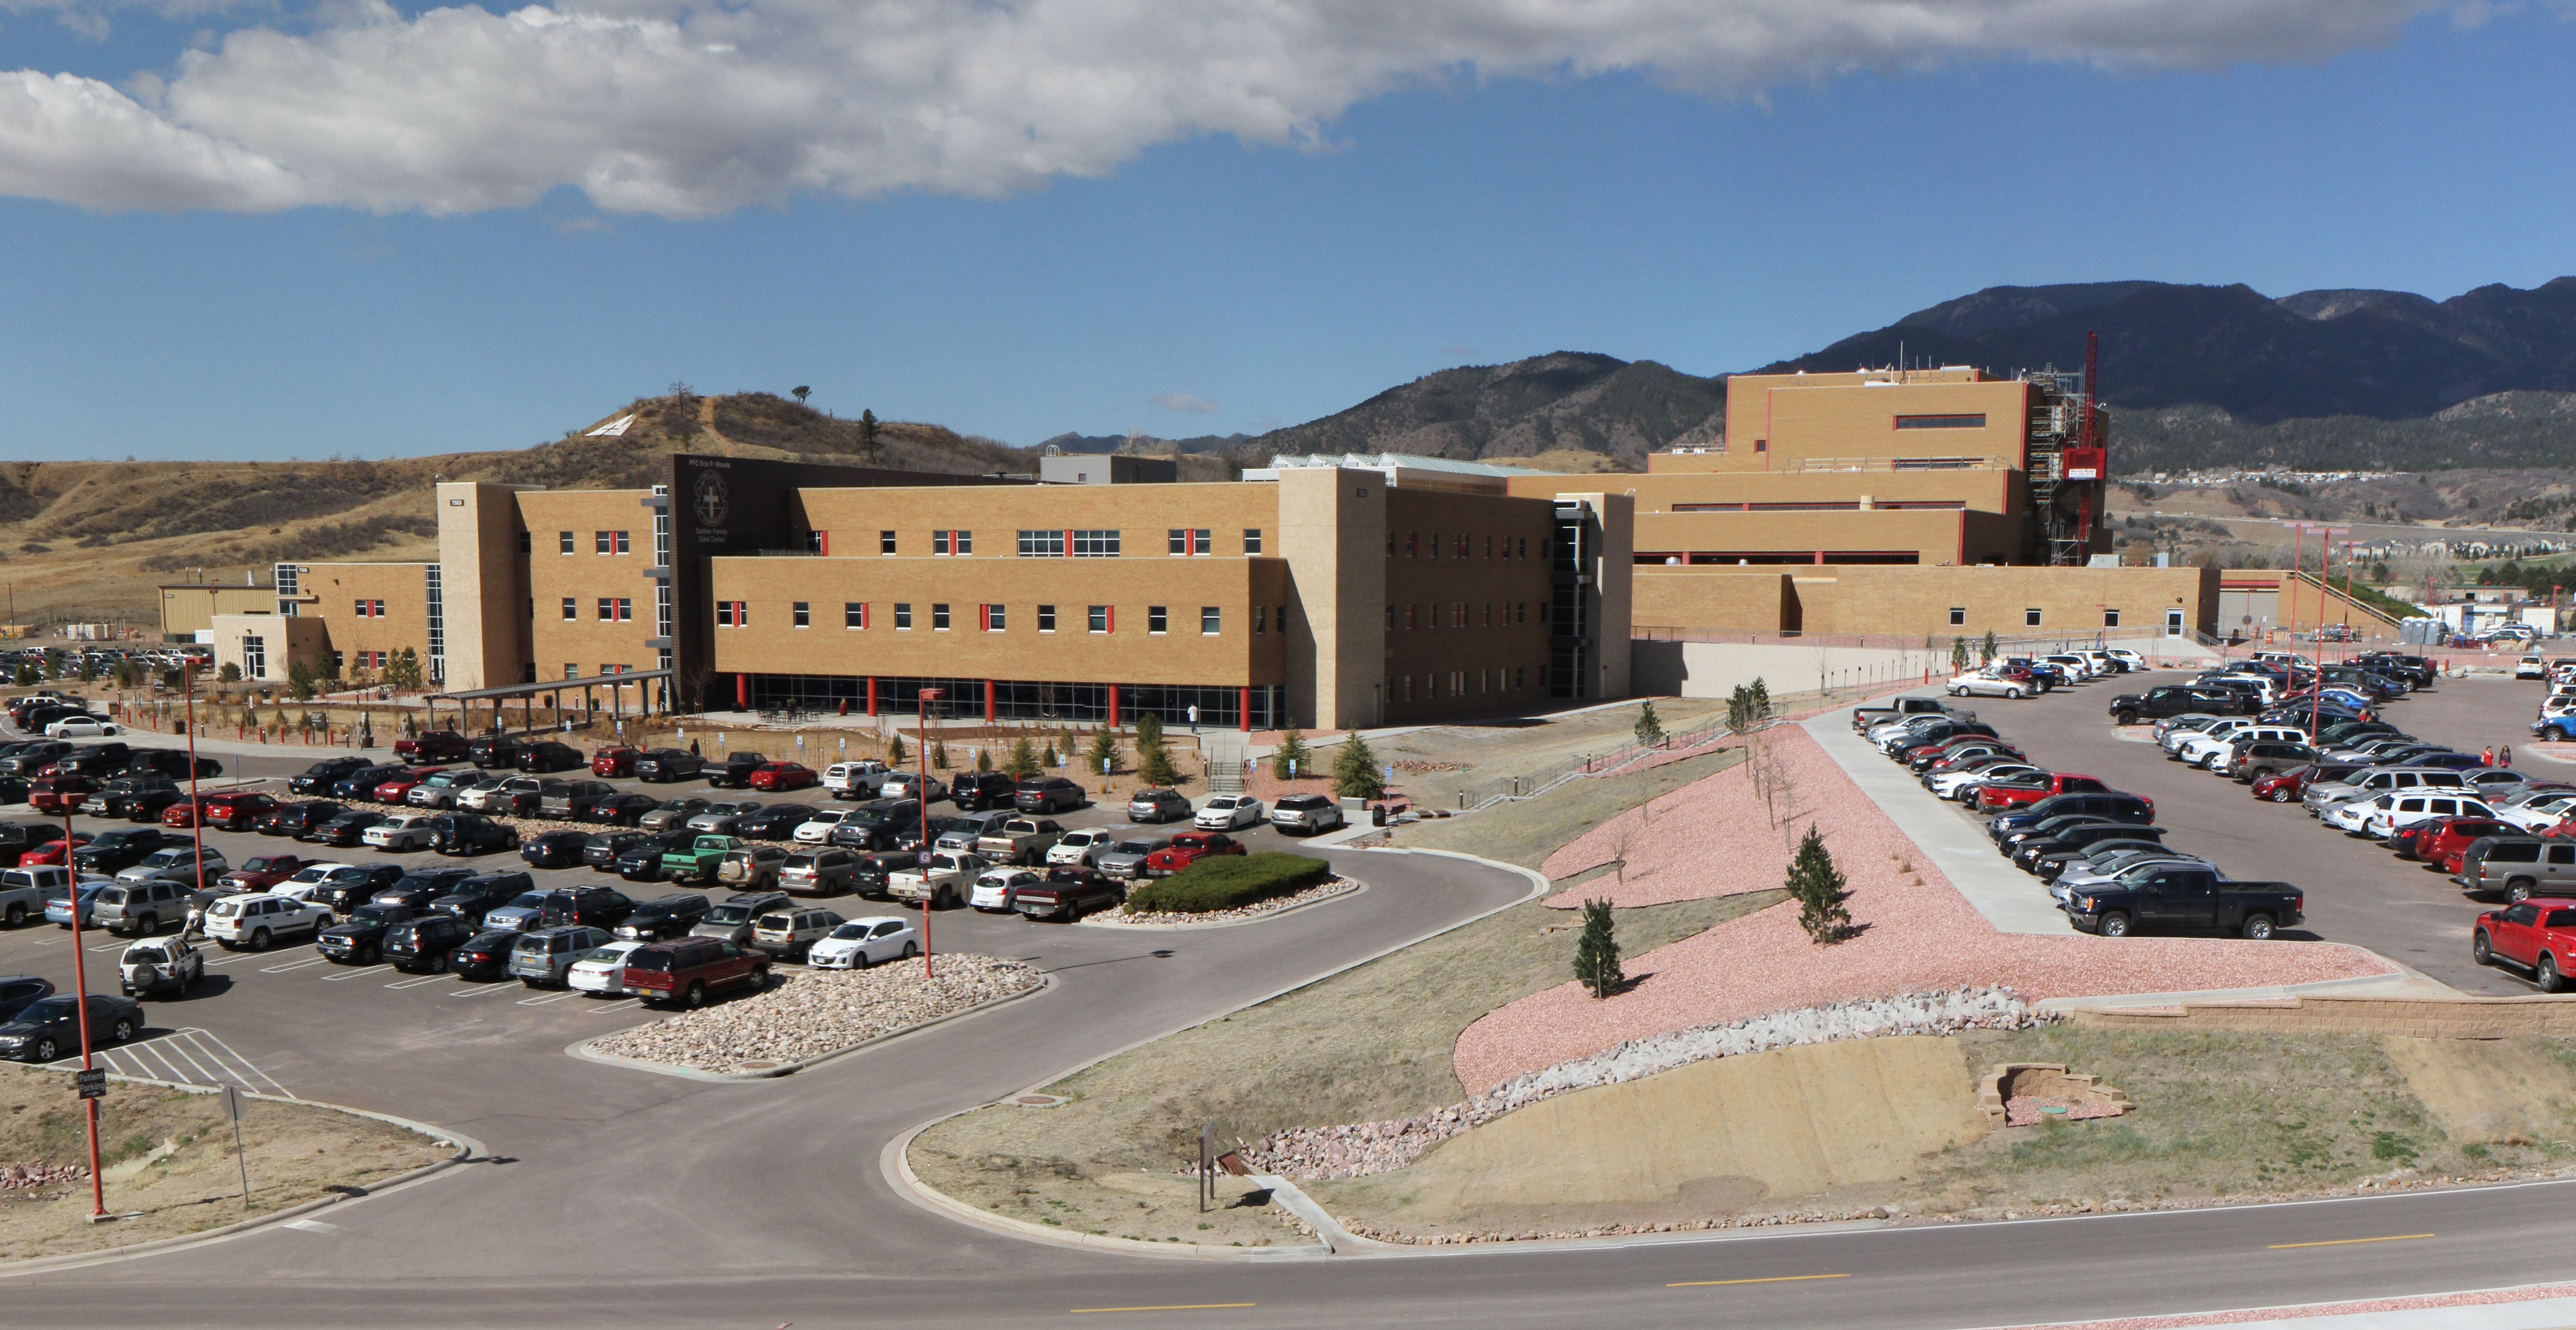 <p>The Evans Army Community Hospital in Fort Carson, Colo.</p>